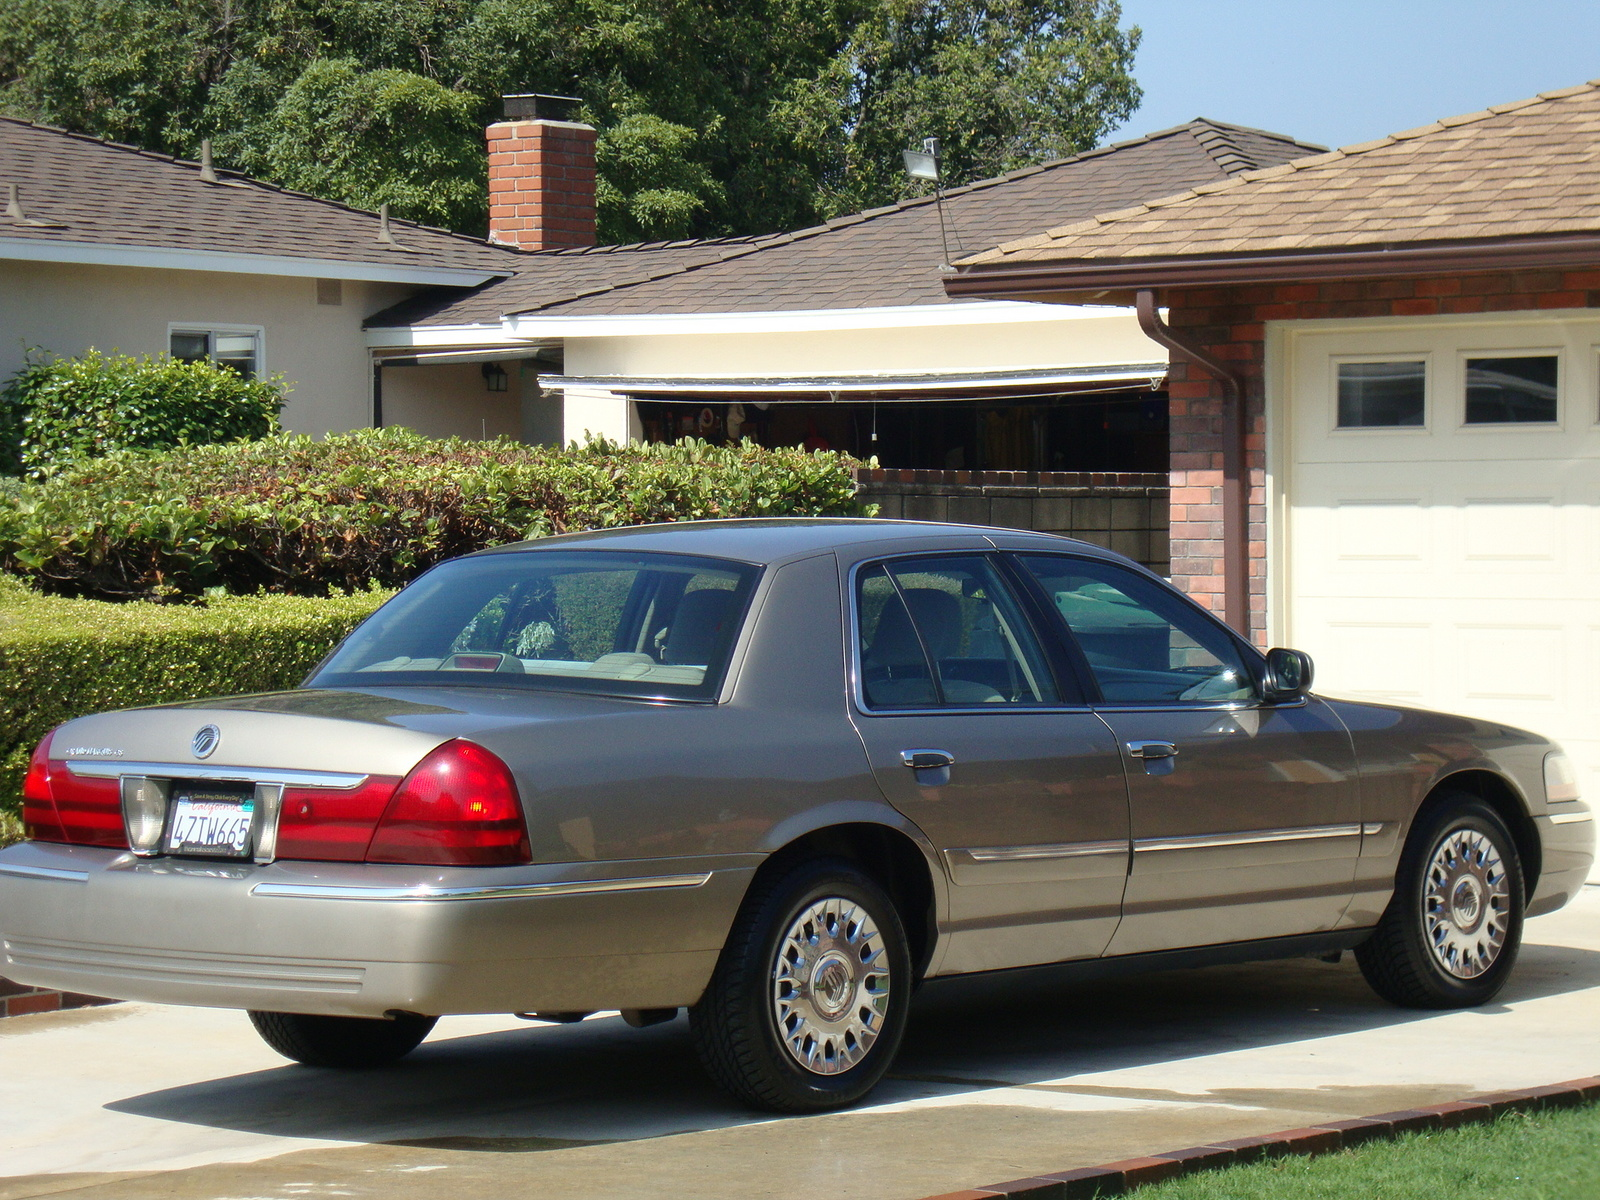 2003 Mercury Grand Marquis #6